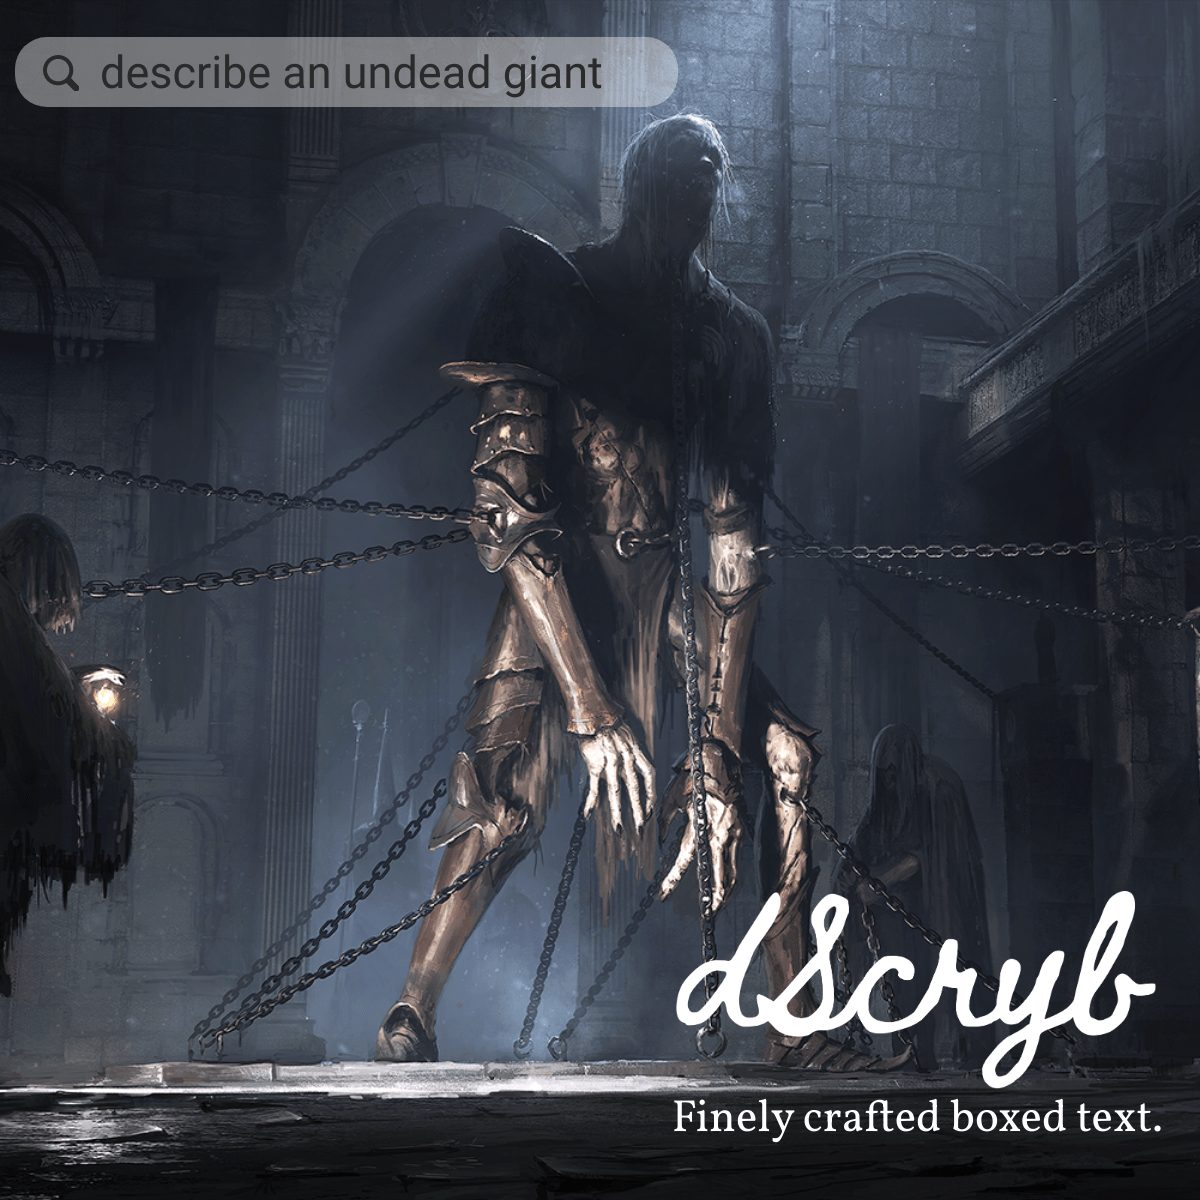 dscryb undead giant RPG boxed text